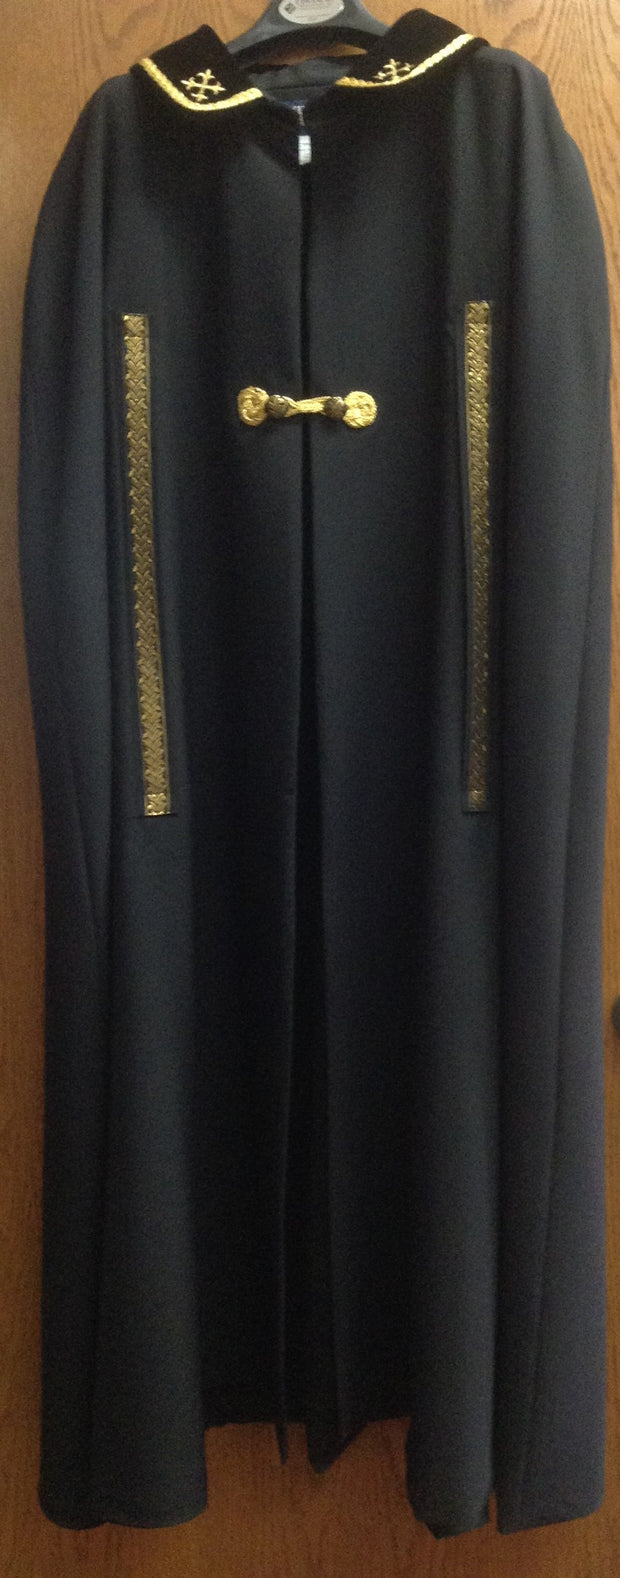 4473T Clergy Cape